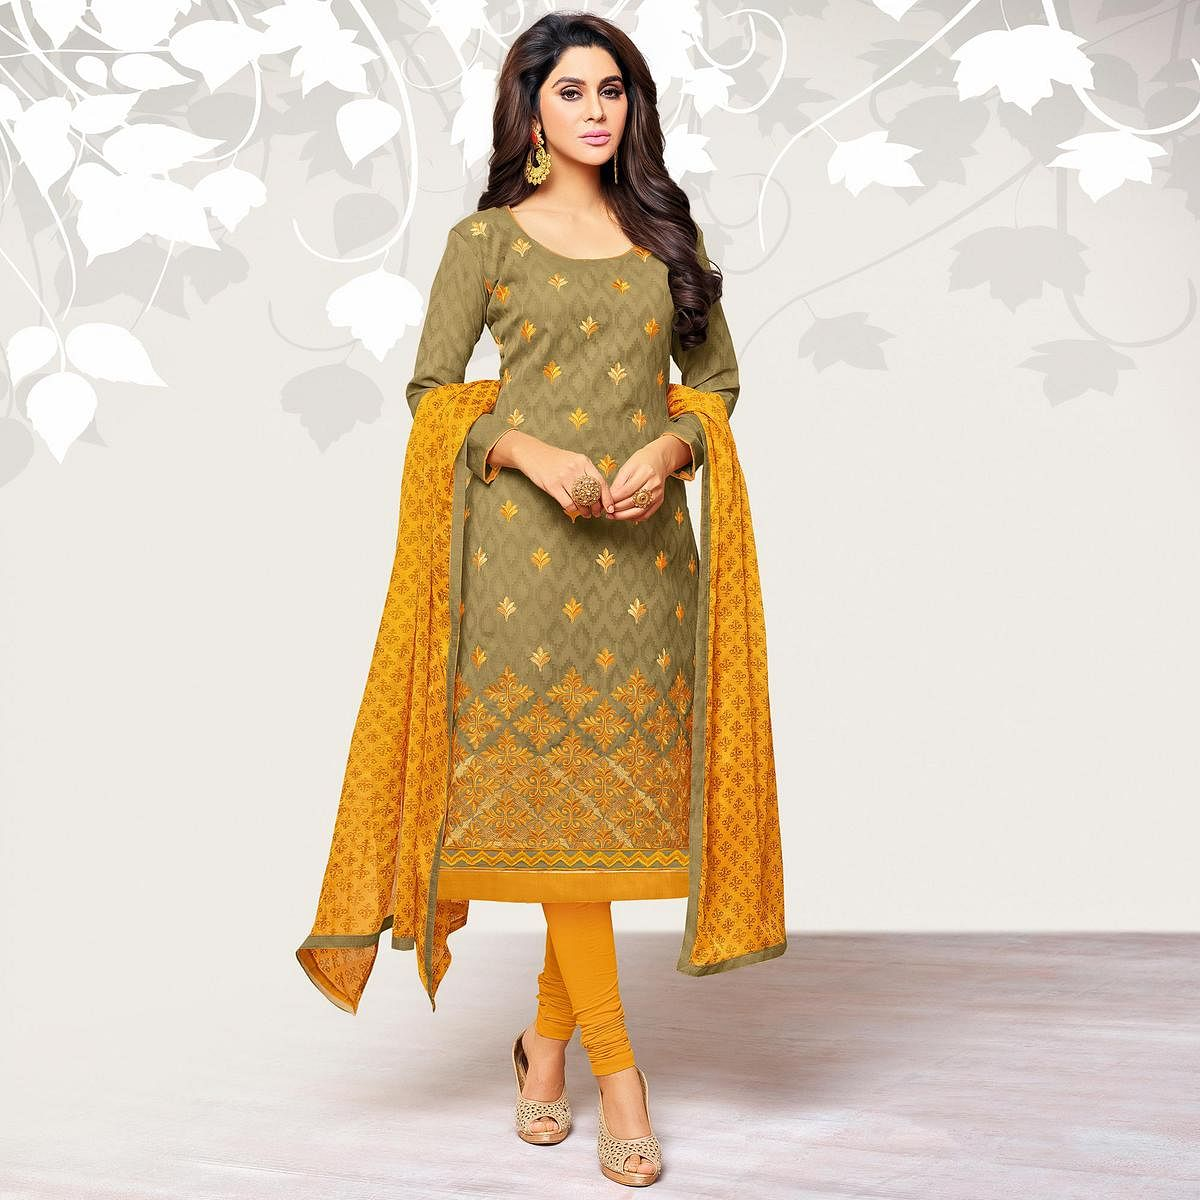 Opulent Light Olive Green Colored Casual Embroidered Jacquard Suit